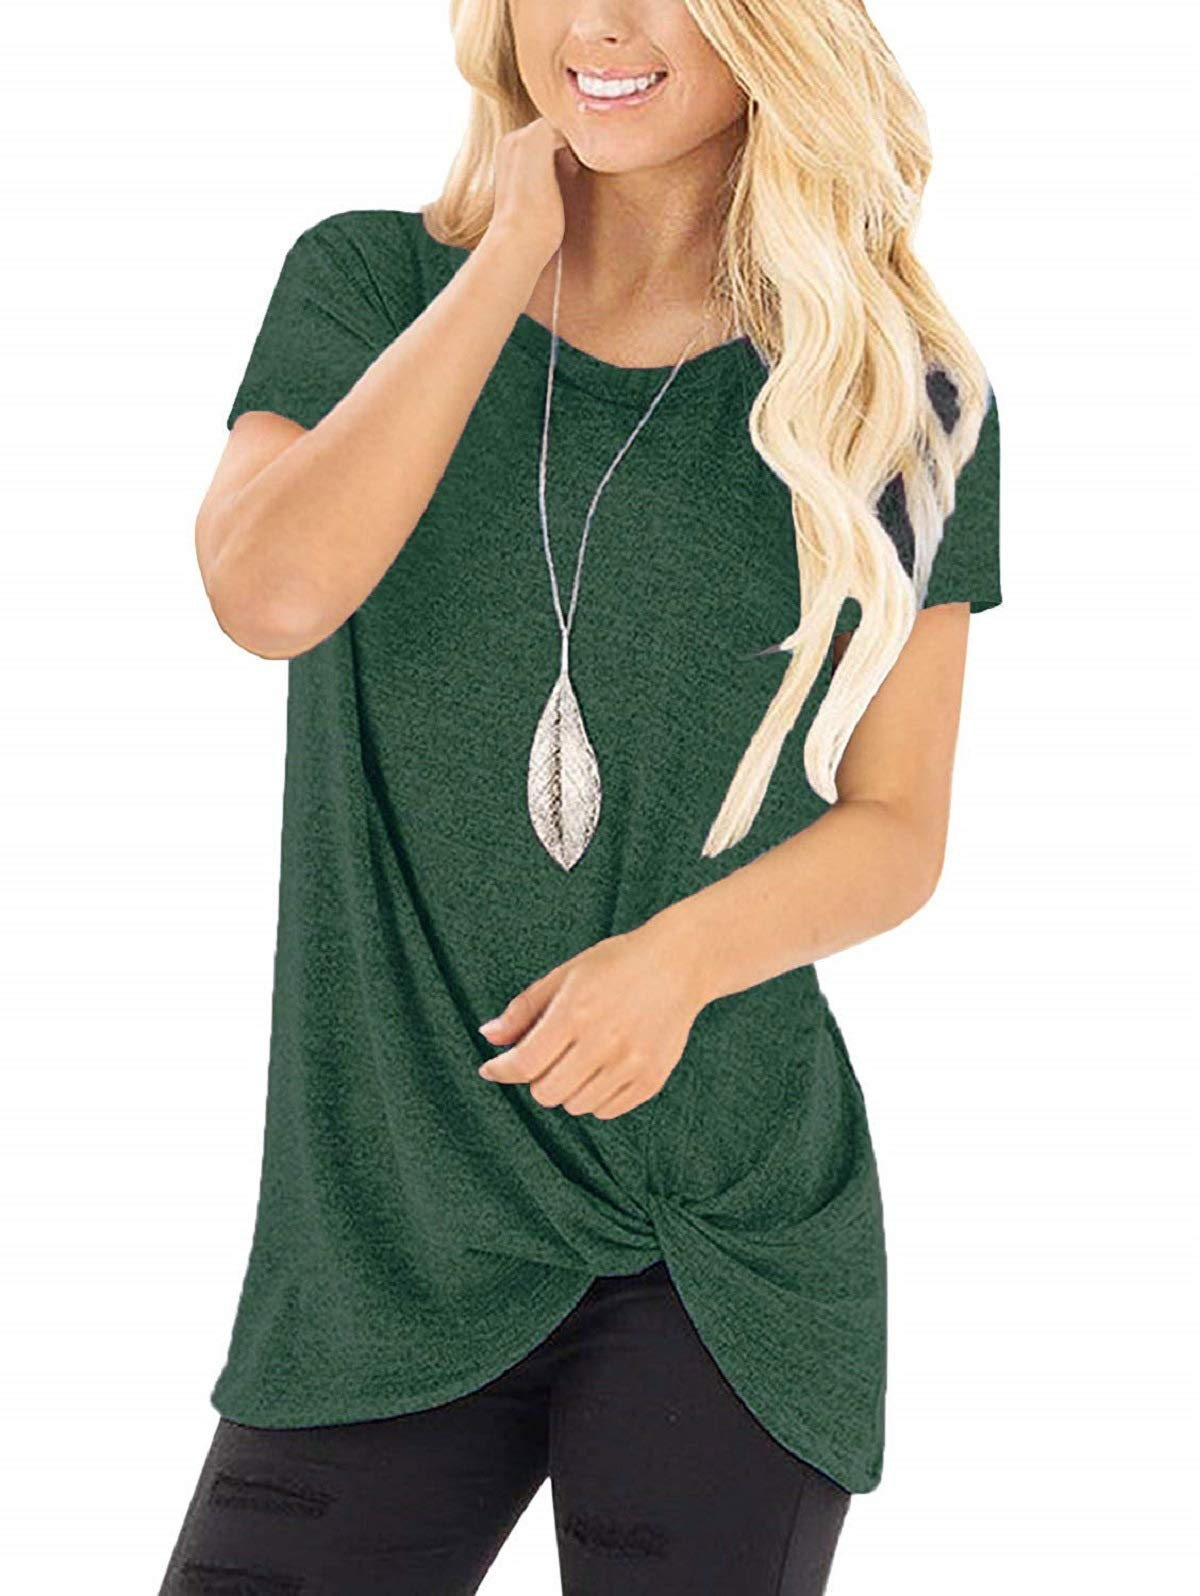 SHIBEVER Summer Soft Loose Casual Women's Tops Shirts Fashion Twist Knotted Blouses Short Sleeve Round Neck Tunic T Shirt Green XL by SHIBEVER